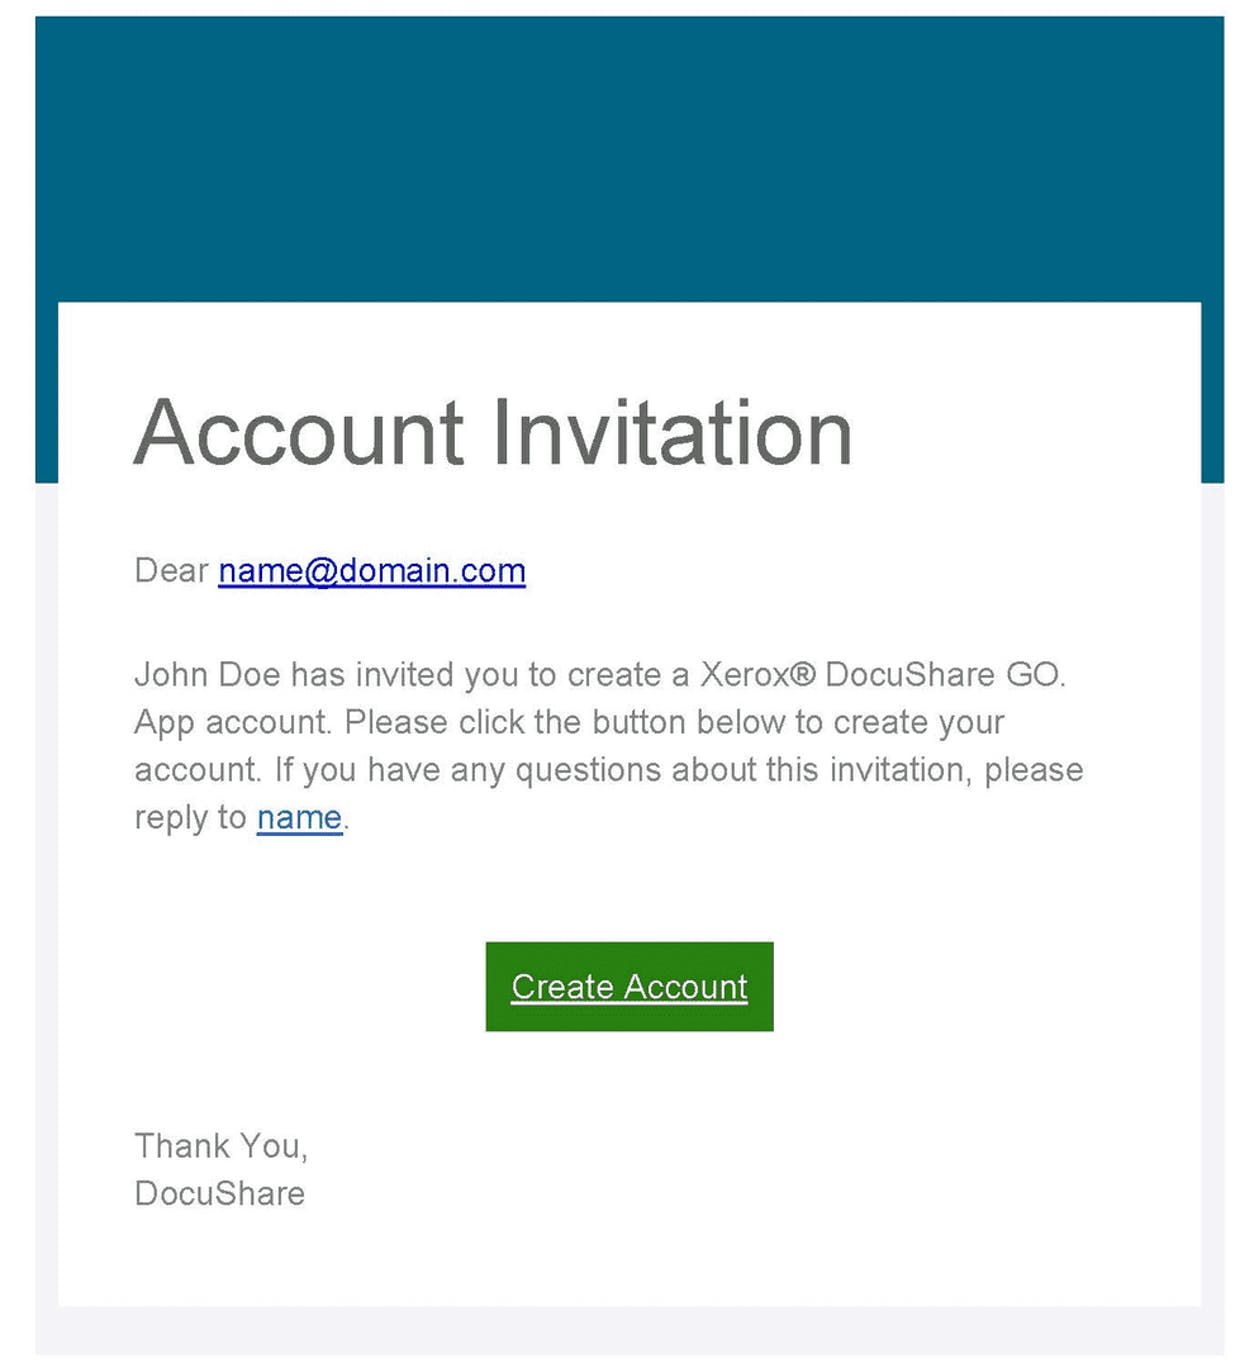 Email Notification: Account Invitation